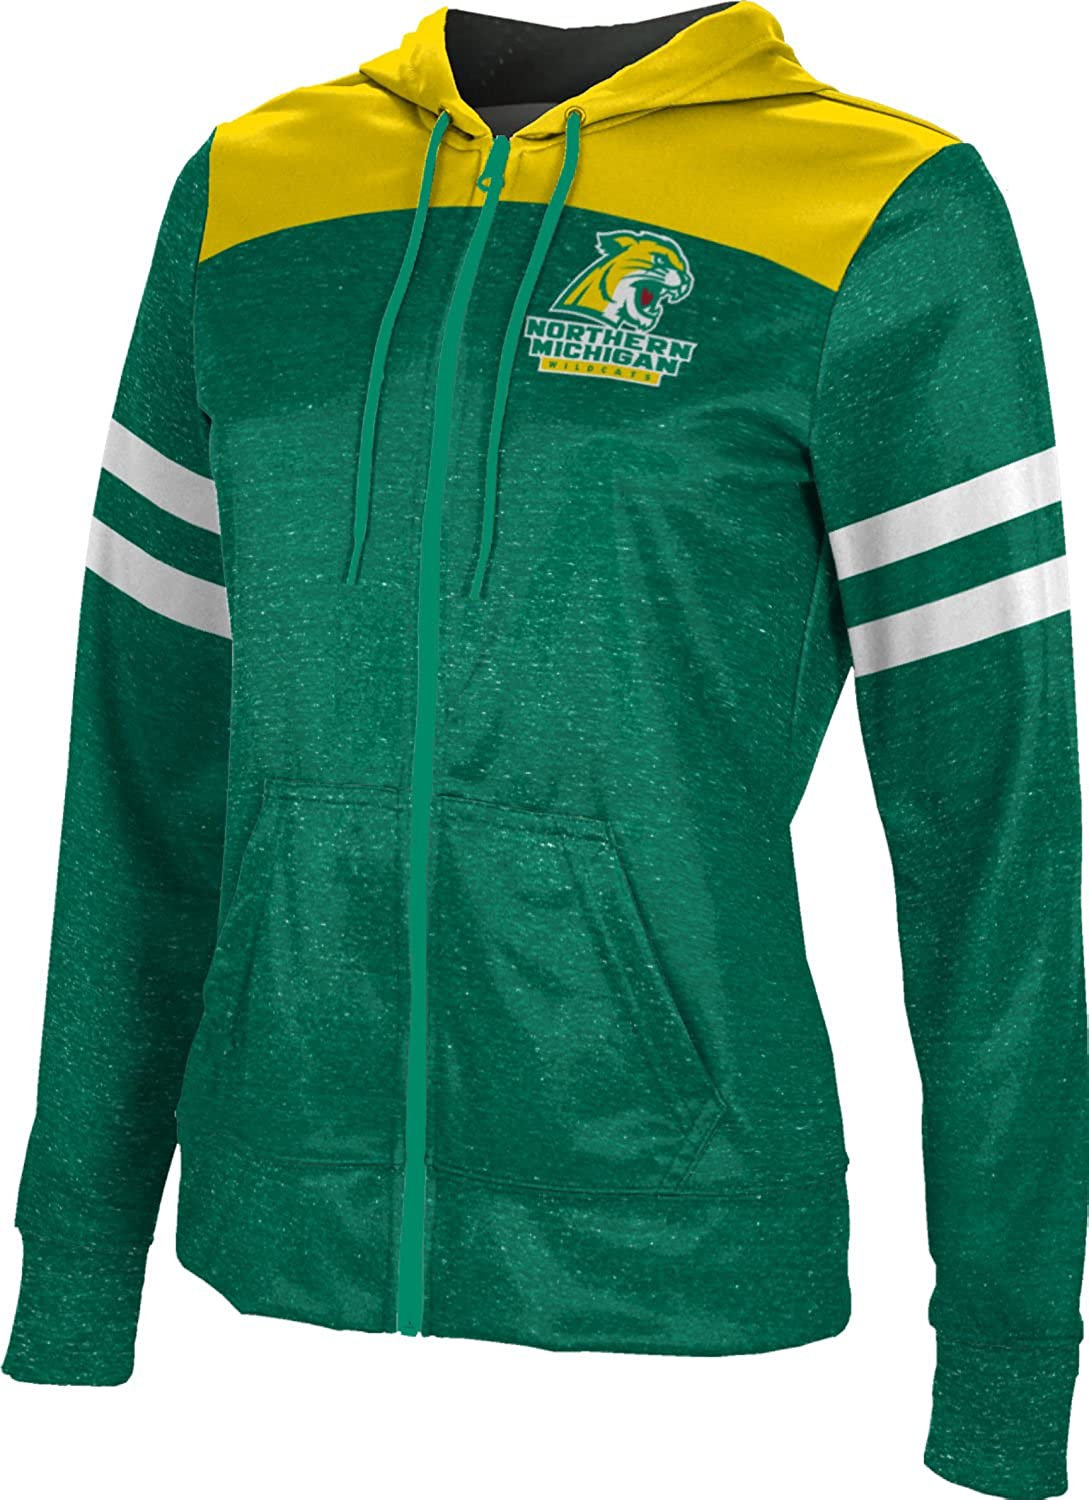 ProSphere Northern Michigan University Zipper Sch Girls' Limited time trial price quality assurance Hoodie